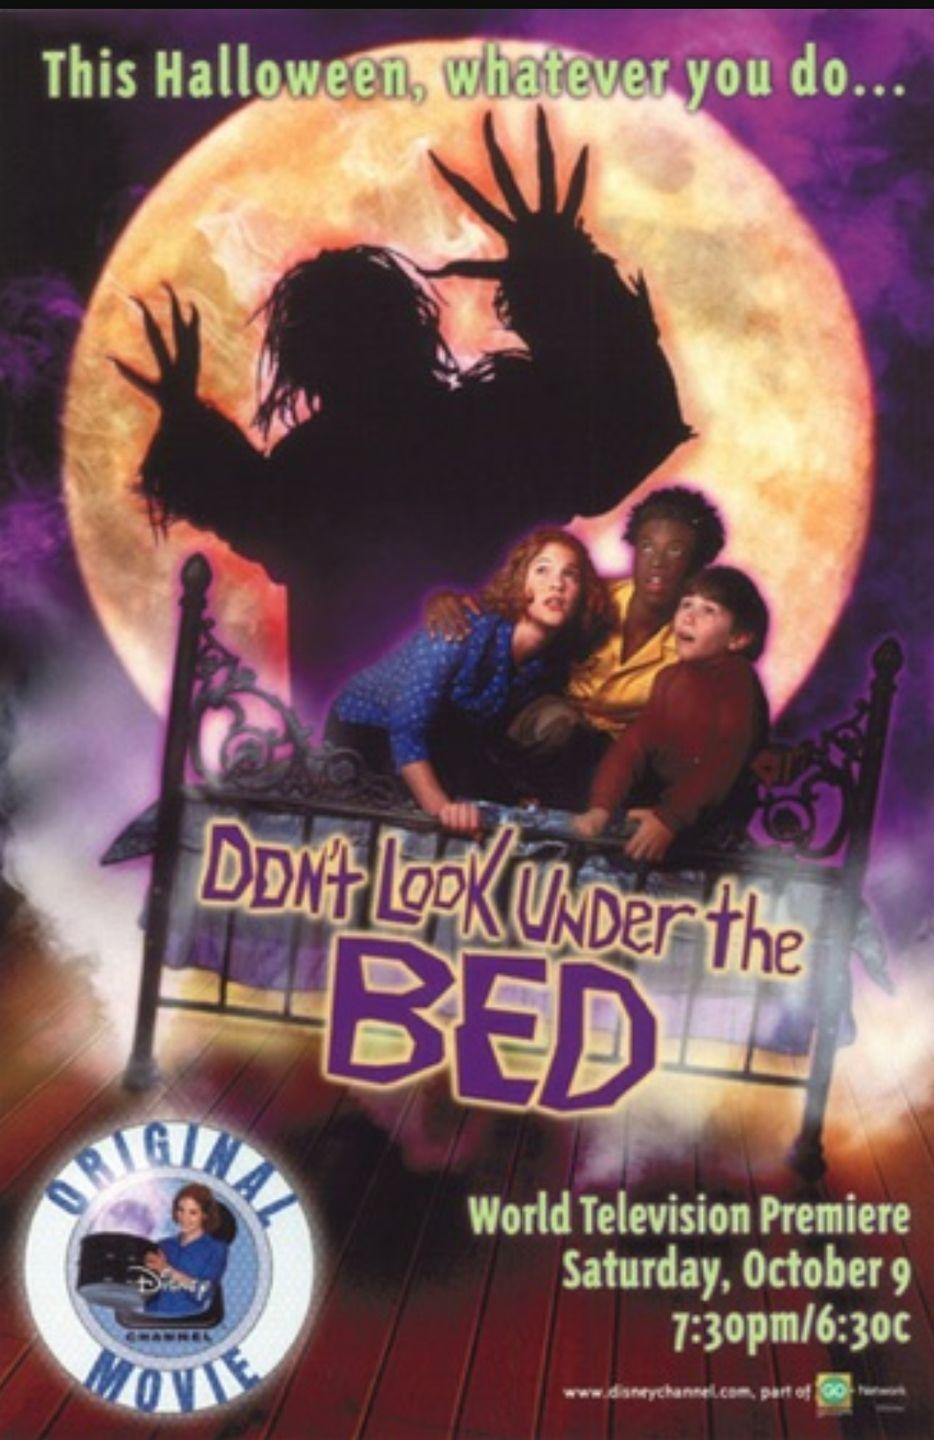 """<p>It may be considered the scariest DCOM of all time, but let's be honest, if you still jump during <em>Don't Look Under the Bed</em>, maybe you shouldn't be celebrating Halloween at all. </p><p><a class=""""link rapid-noclick-resp"""" href=""""https://go.redirectingat.com?id=74968X1596630&url=https%3A%2F%2Fwww.disneyplus.com%2Fmovies%2Fdont-look-under-the-bed%2F3goYjMmTNBI9&sref=https%3A%2F%2Fwww.seventeen.com%2Fcelebrity%2Fmovies-tv%2Fg29354714%2Fnon-scary-halloween-movies%2F"""" rel=""""nofollow noopener"""" target=""""_blank"""" data-ylk=""""slk:Watch Now"""">Watch Now</a></p>"""